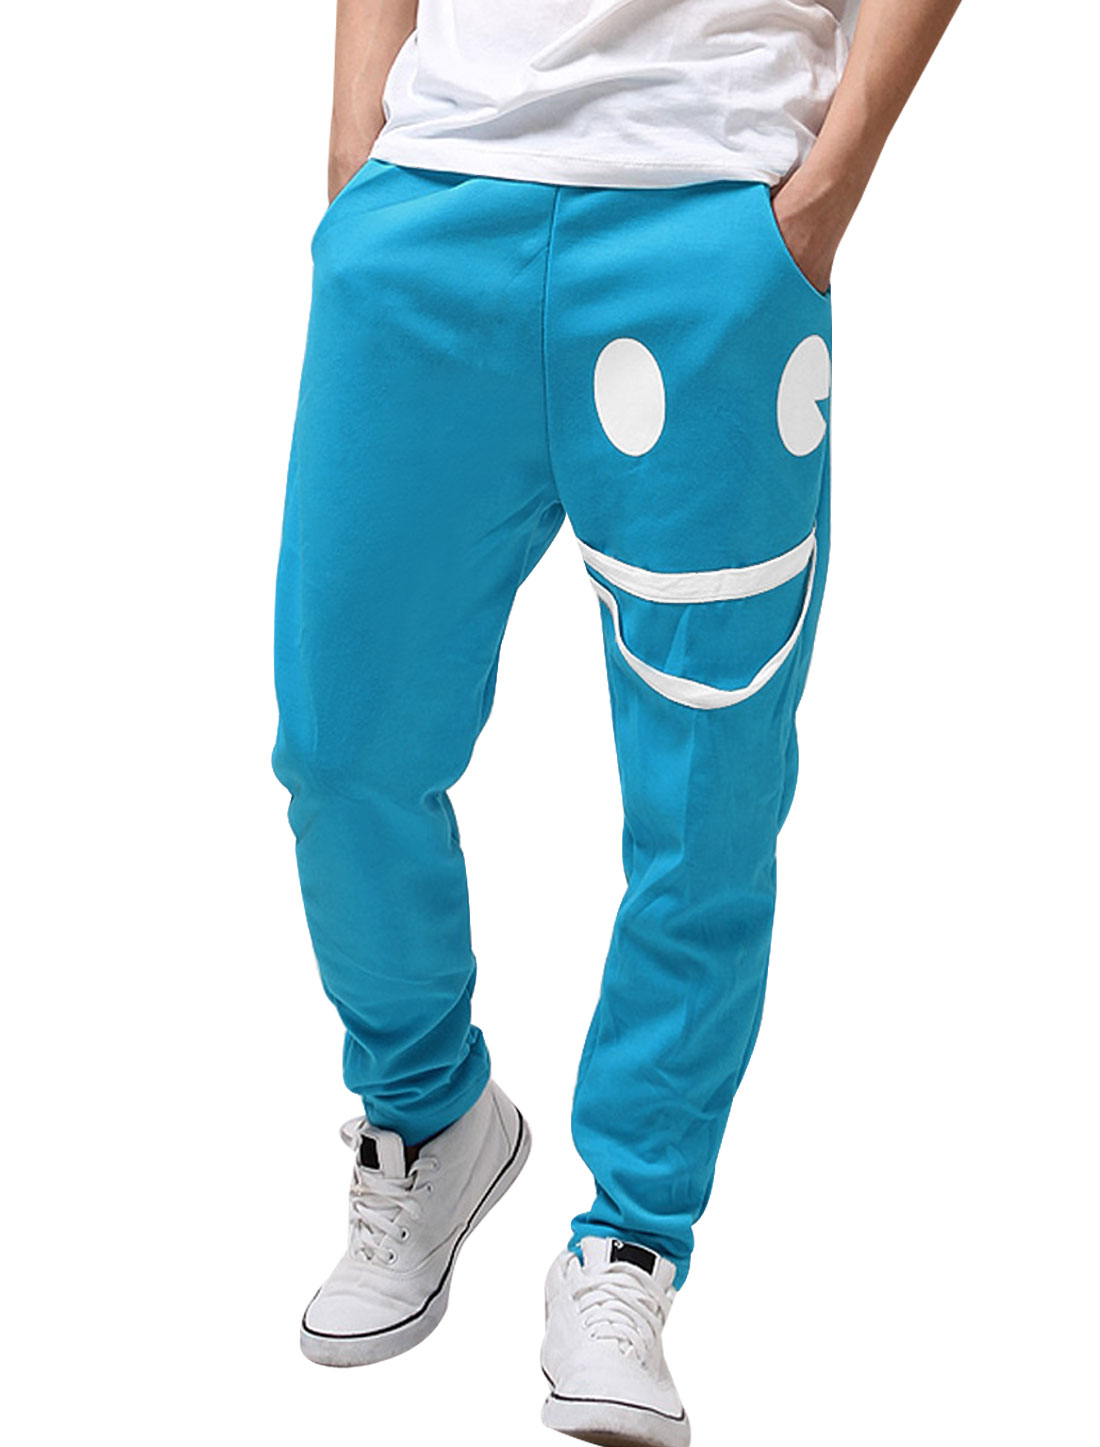 Men Blue New Casual Pockets Smile Design Harem Trousers W32